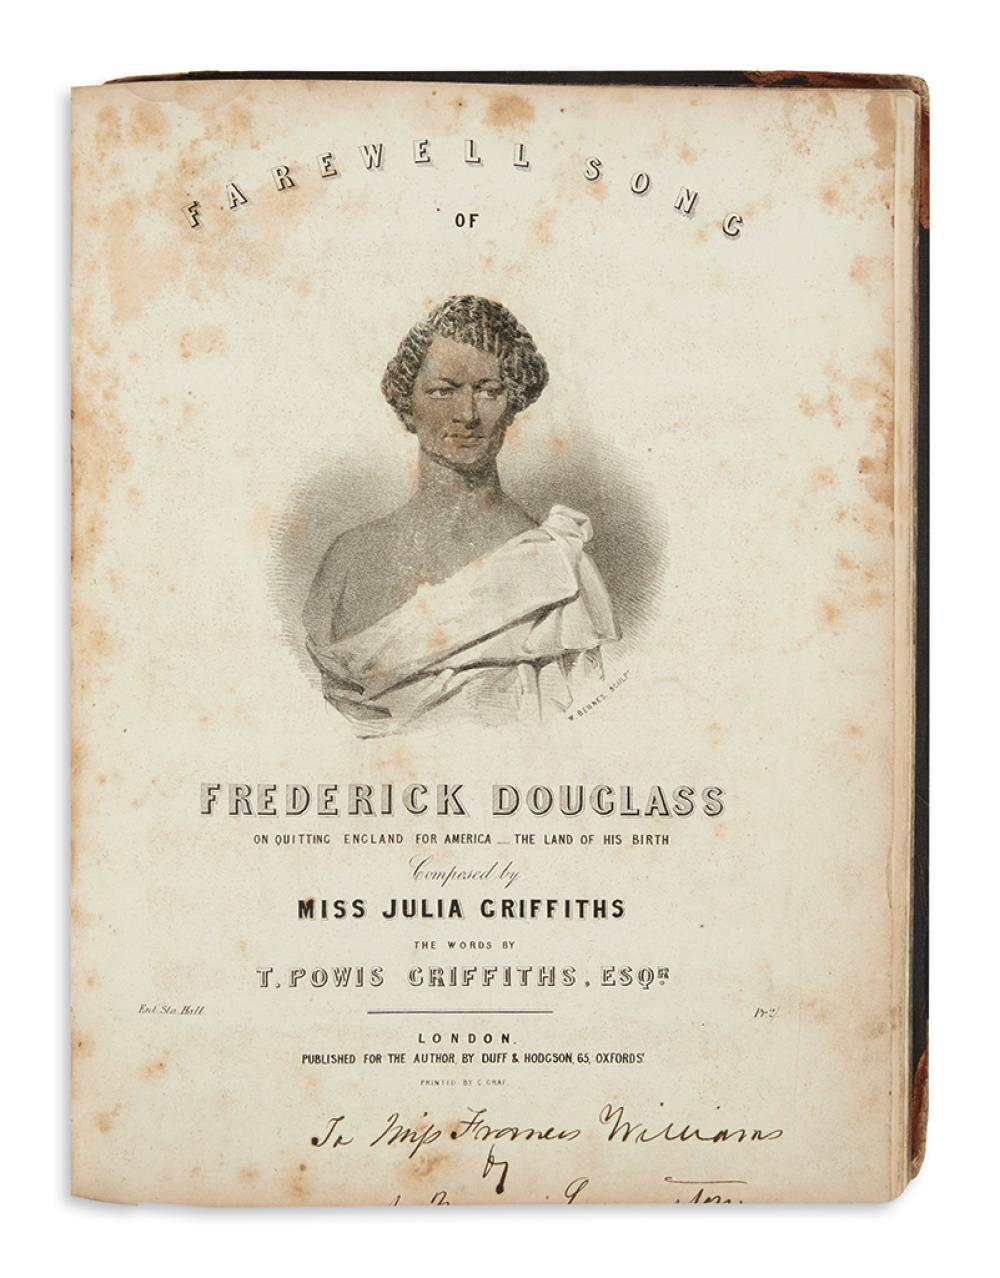 (DOUGLASS, FREDERICK.) Griffiths, Julia and T. Powis. Farewell Song of Frederick Douglass, on Quitting England for America